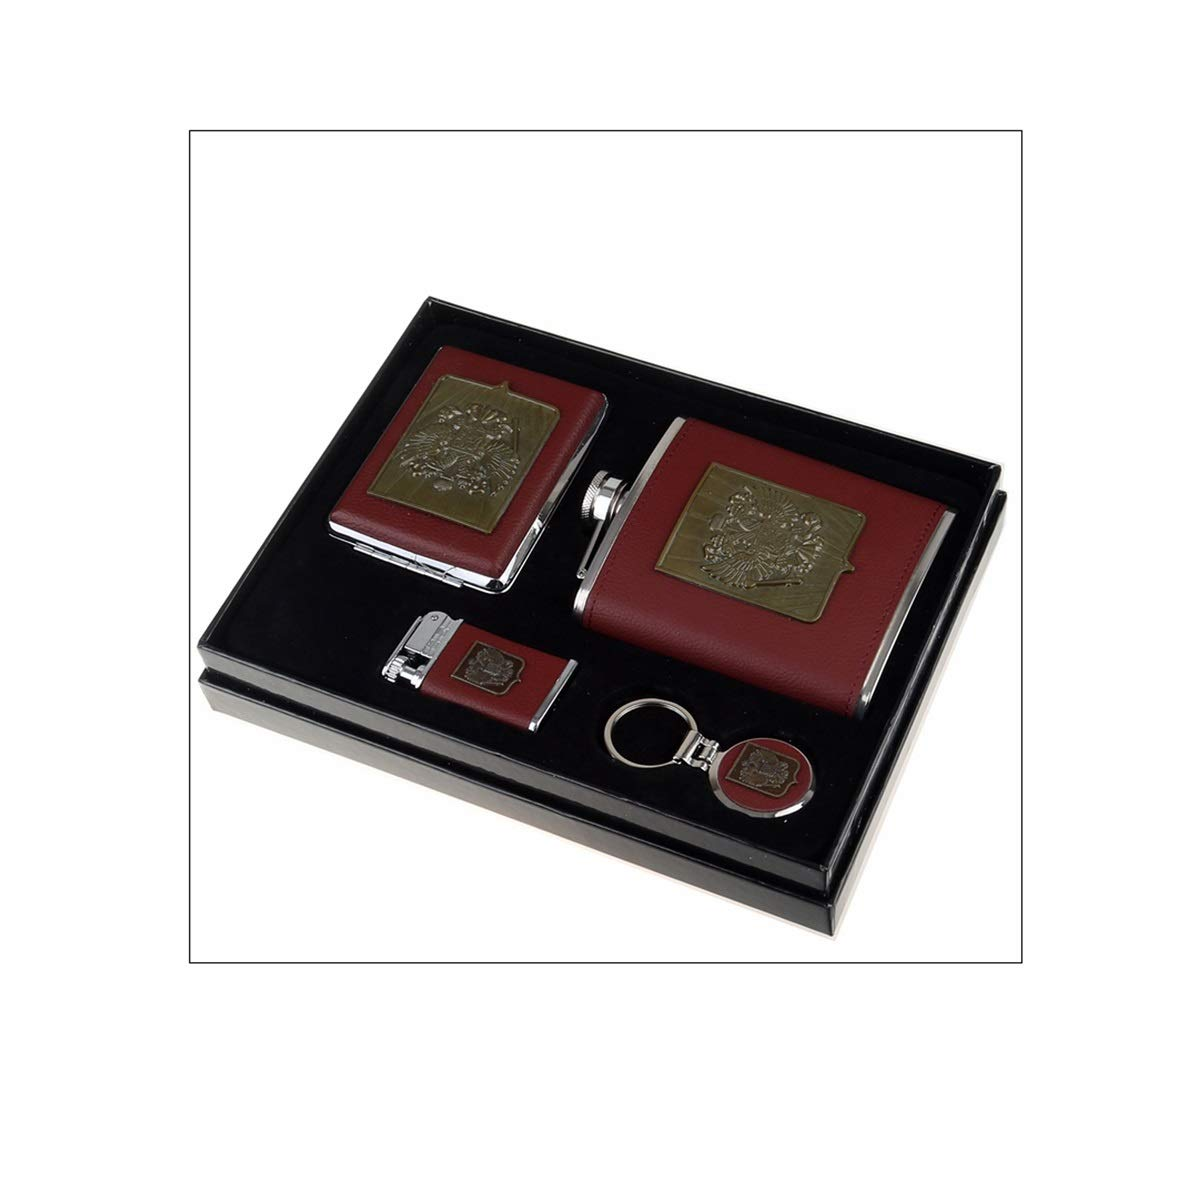 Huijunwenti Hip Flask Half A Catty 250 Ml Gift Box, 7 Ounces, Hip Flask Cigarette Case Key Ring Lighter 5 Piece Set Birthday Gift, Black, Brown Easy to Carry (Color : Brown)